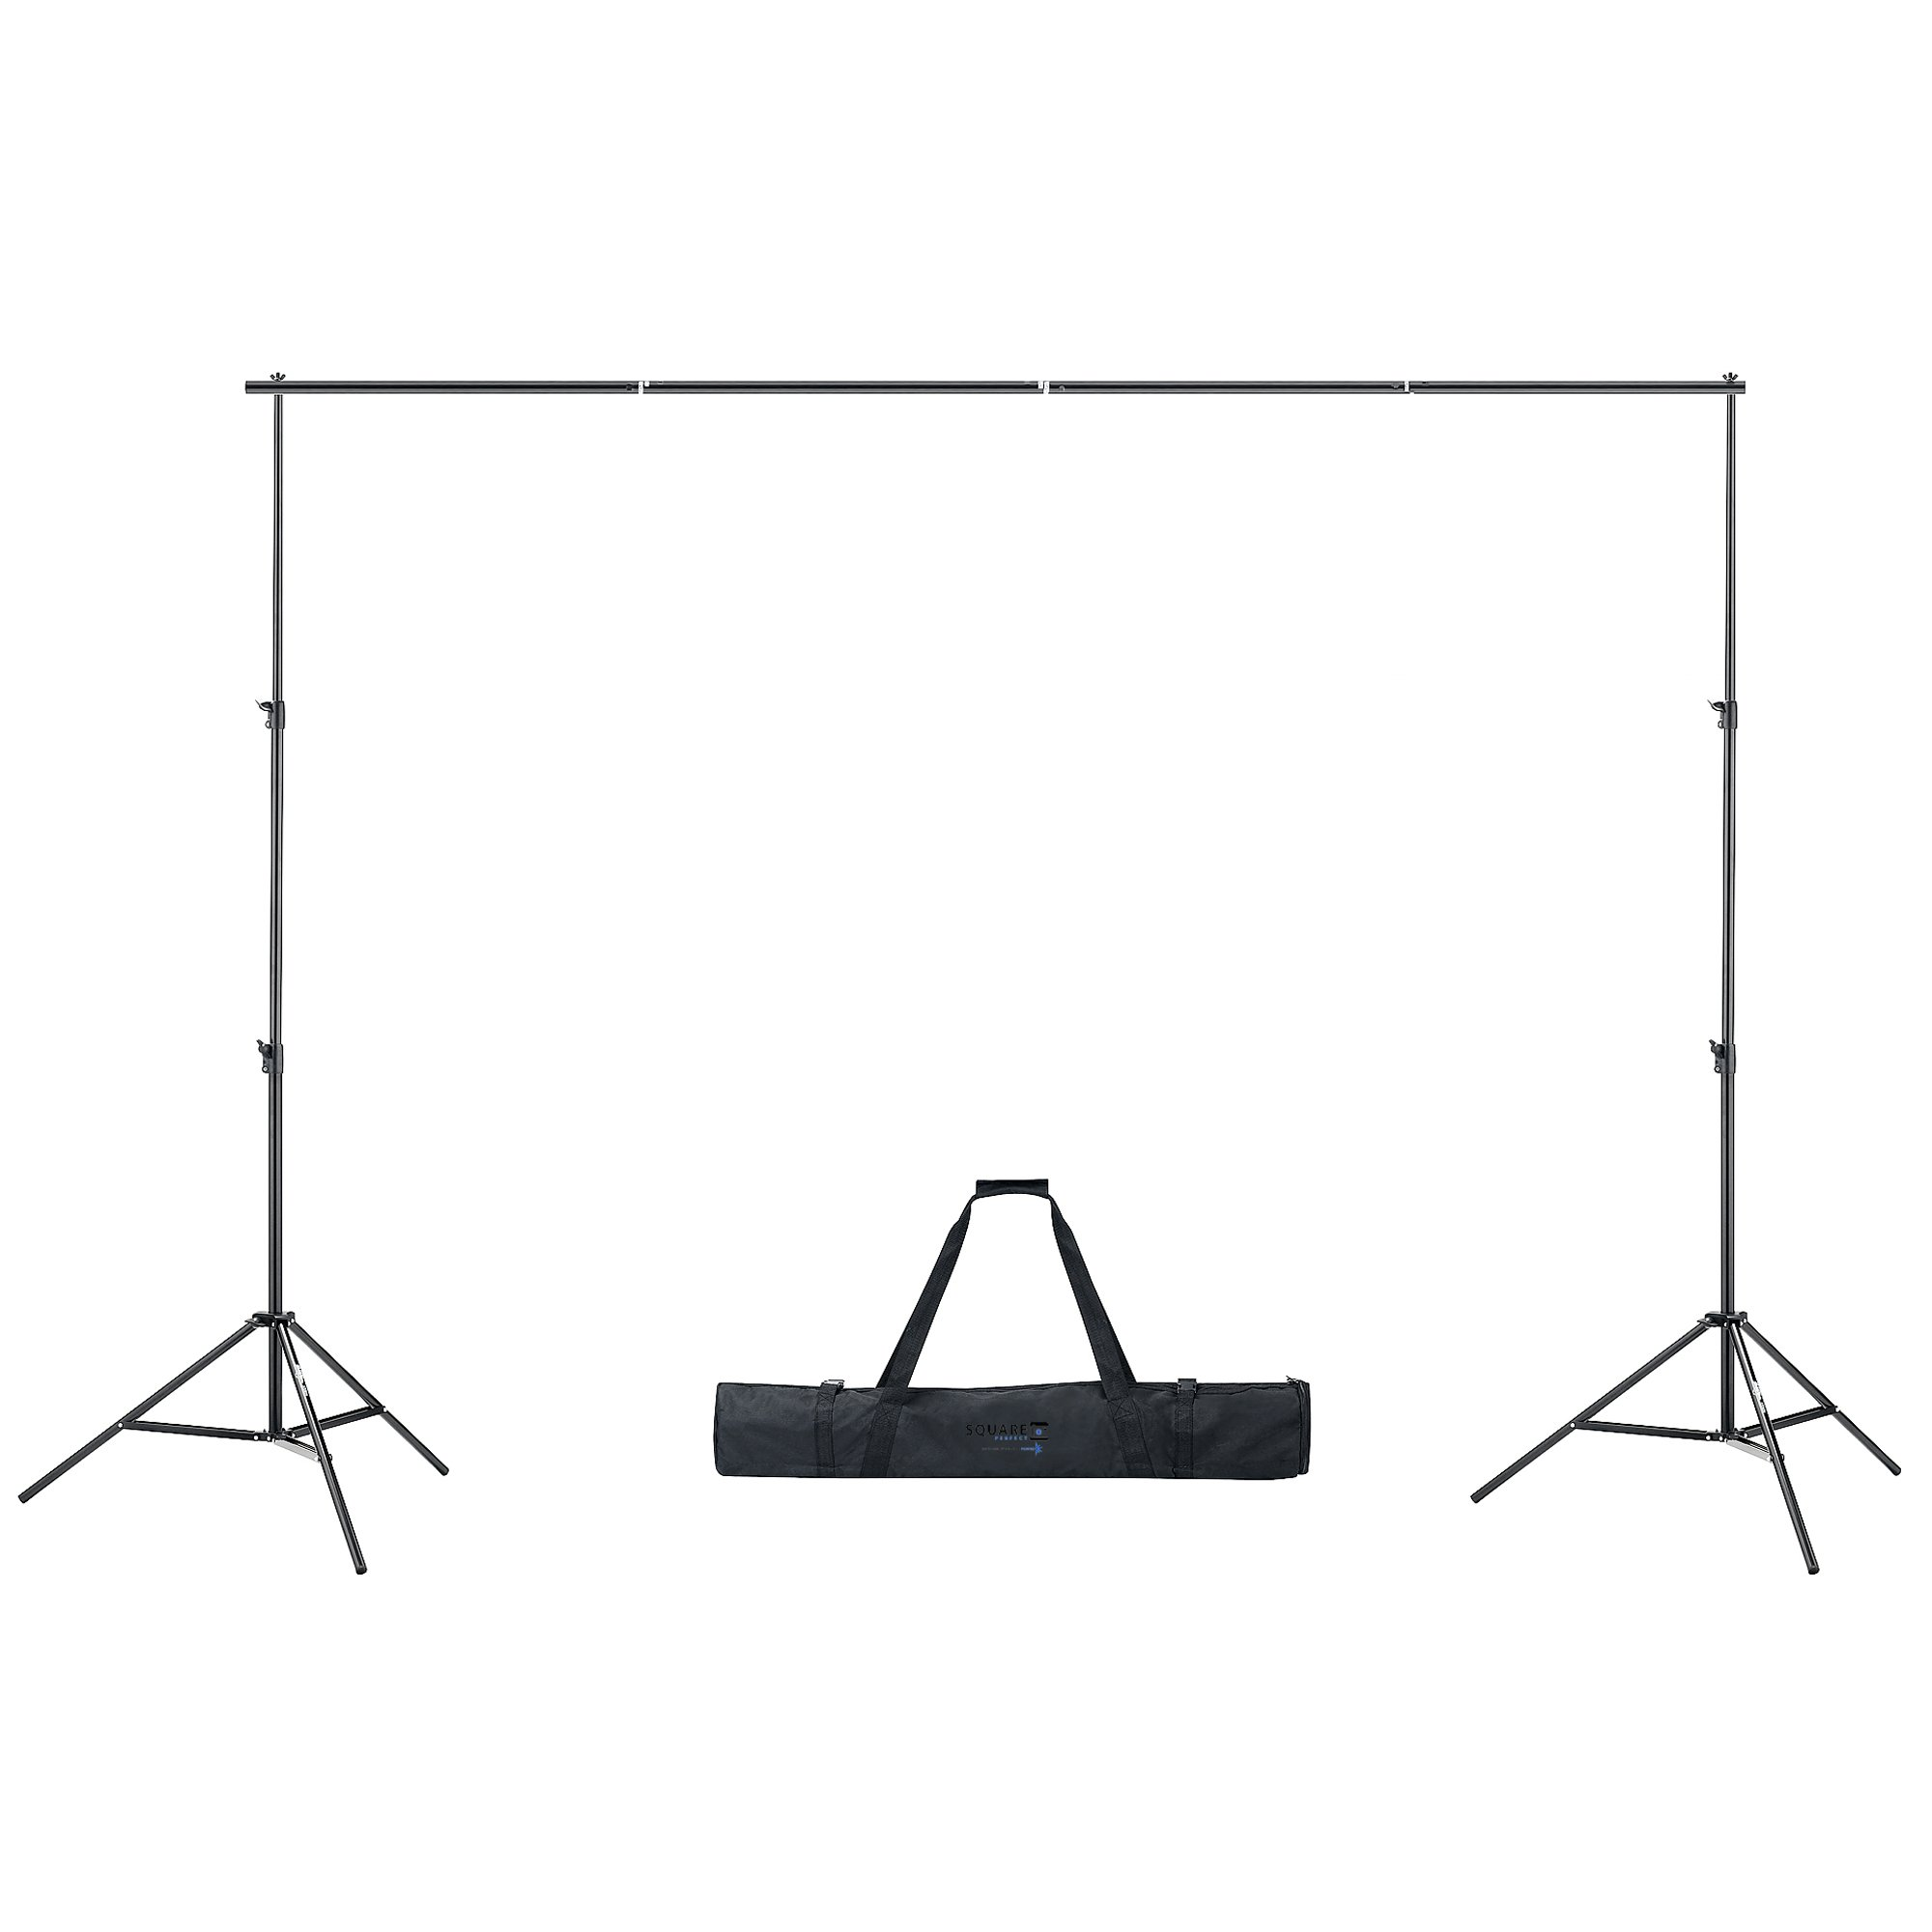 1040 SP2000 | Backdrop Background Support Stand For Muslins Scenic Backdrops and Chromakey Greenscreens or Bluescreens by SQUARE PERFECT